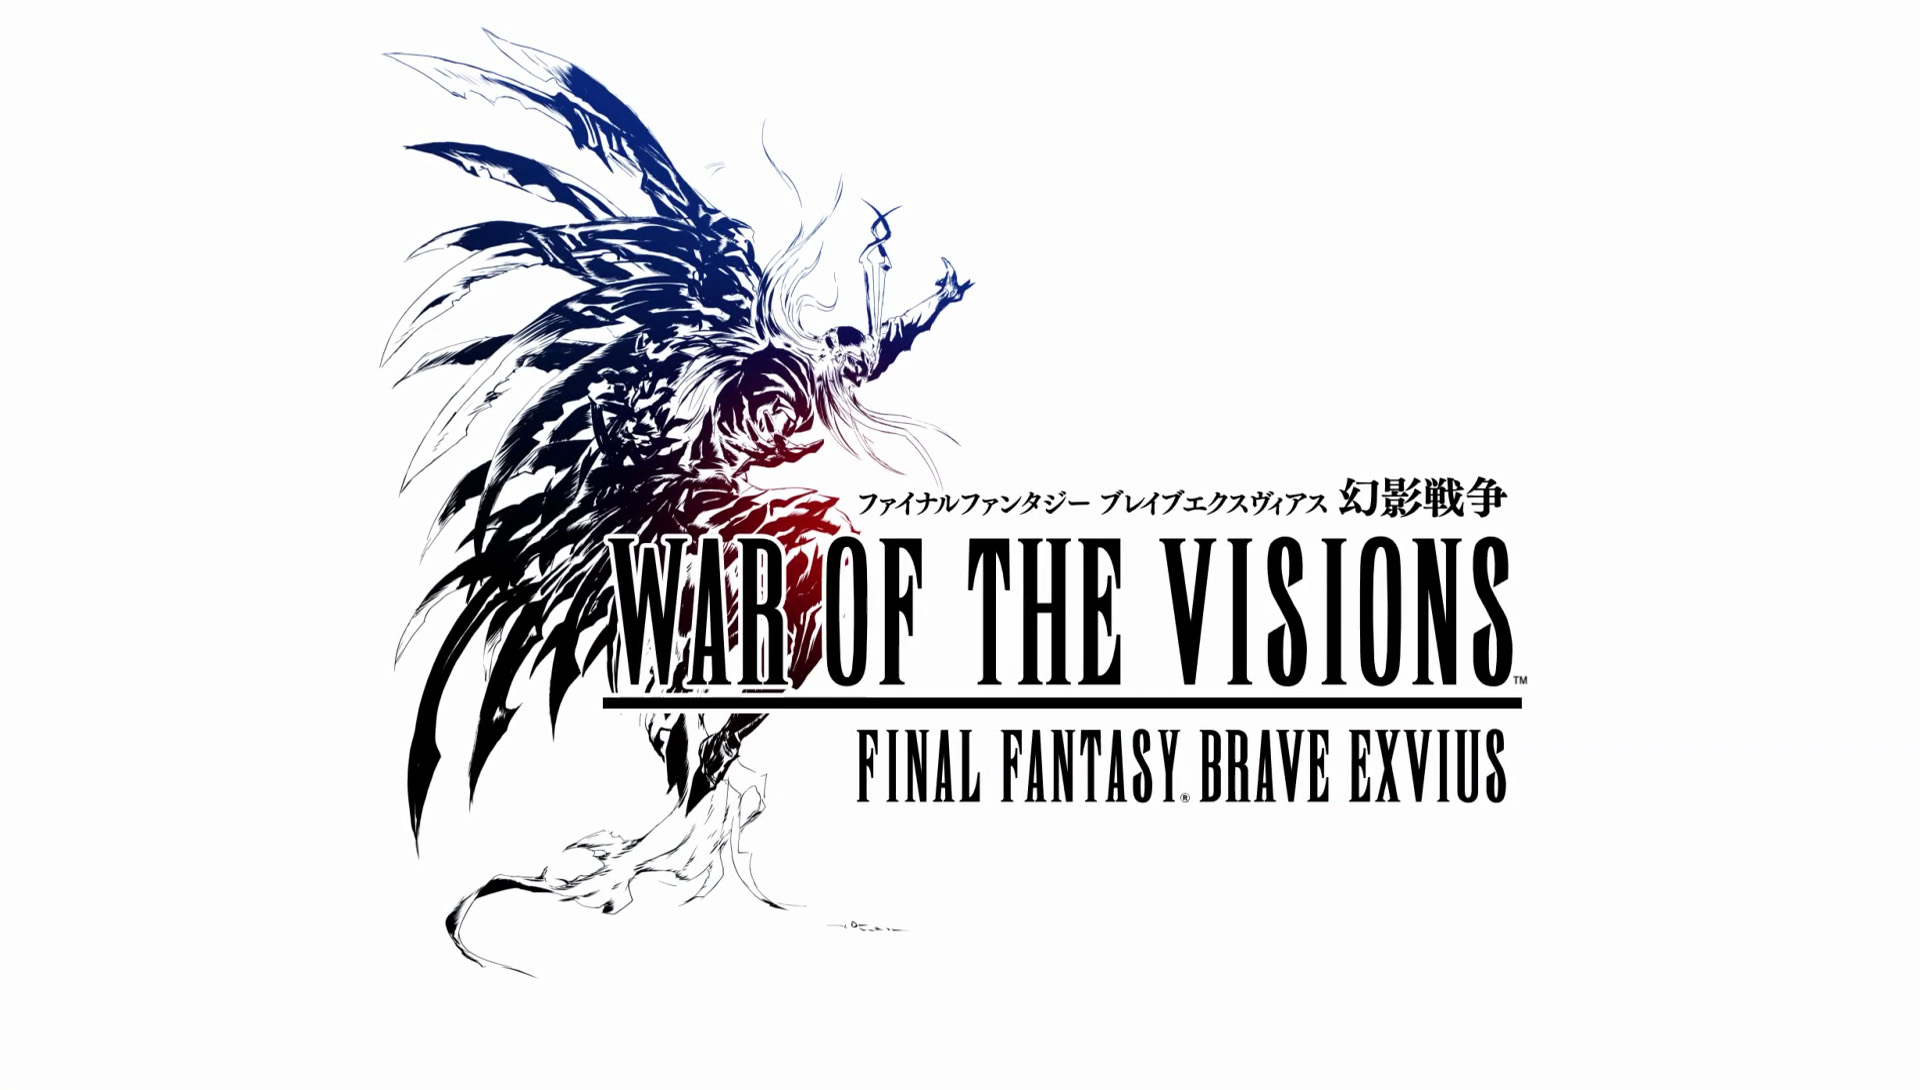 War of the Visions Final Fantasy Brave Exvius: Square anuncia um novo RPG tático!